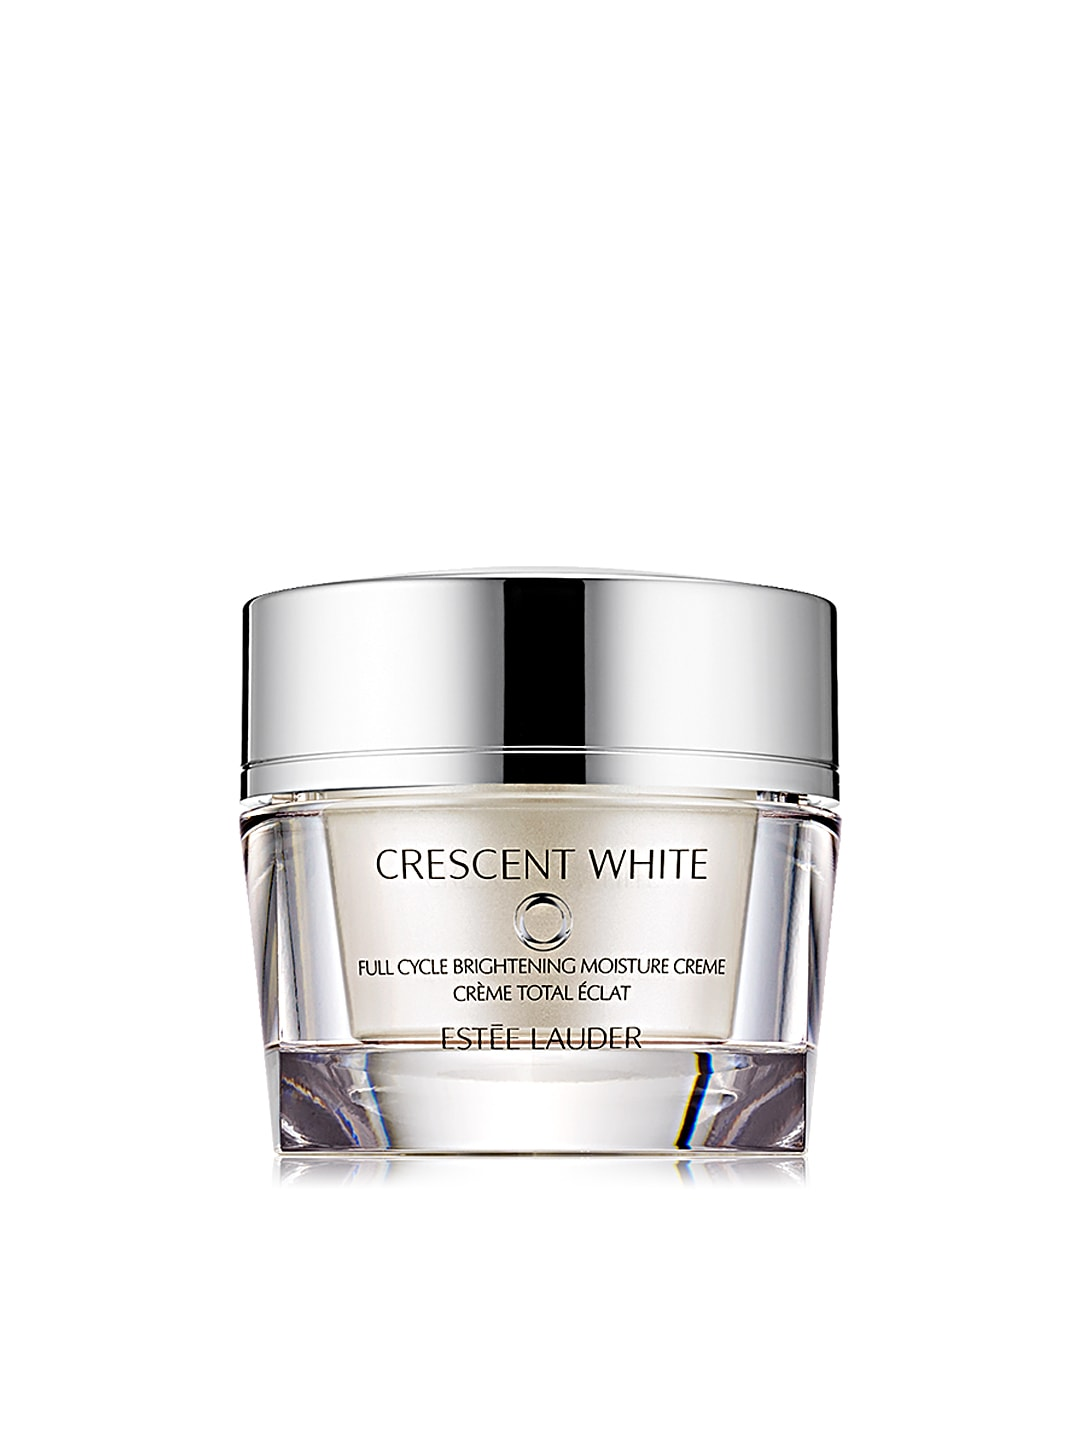 Estee Lauder Crescent White Full Cycle Brightening Moisture Day Creme image